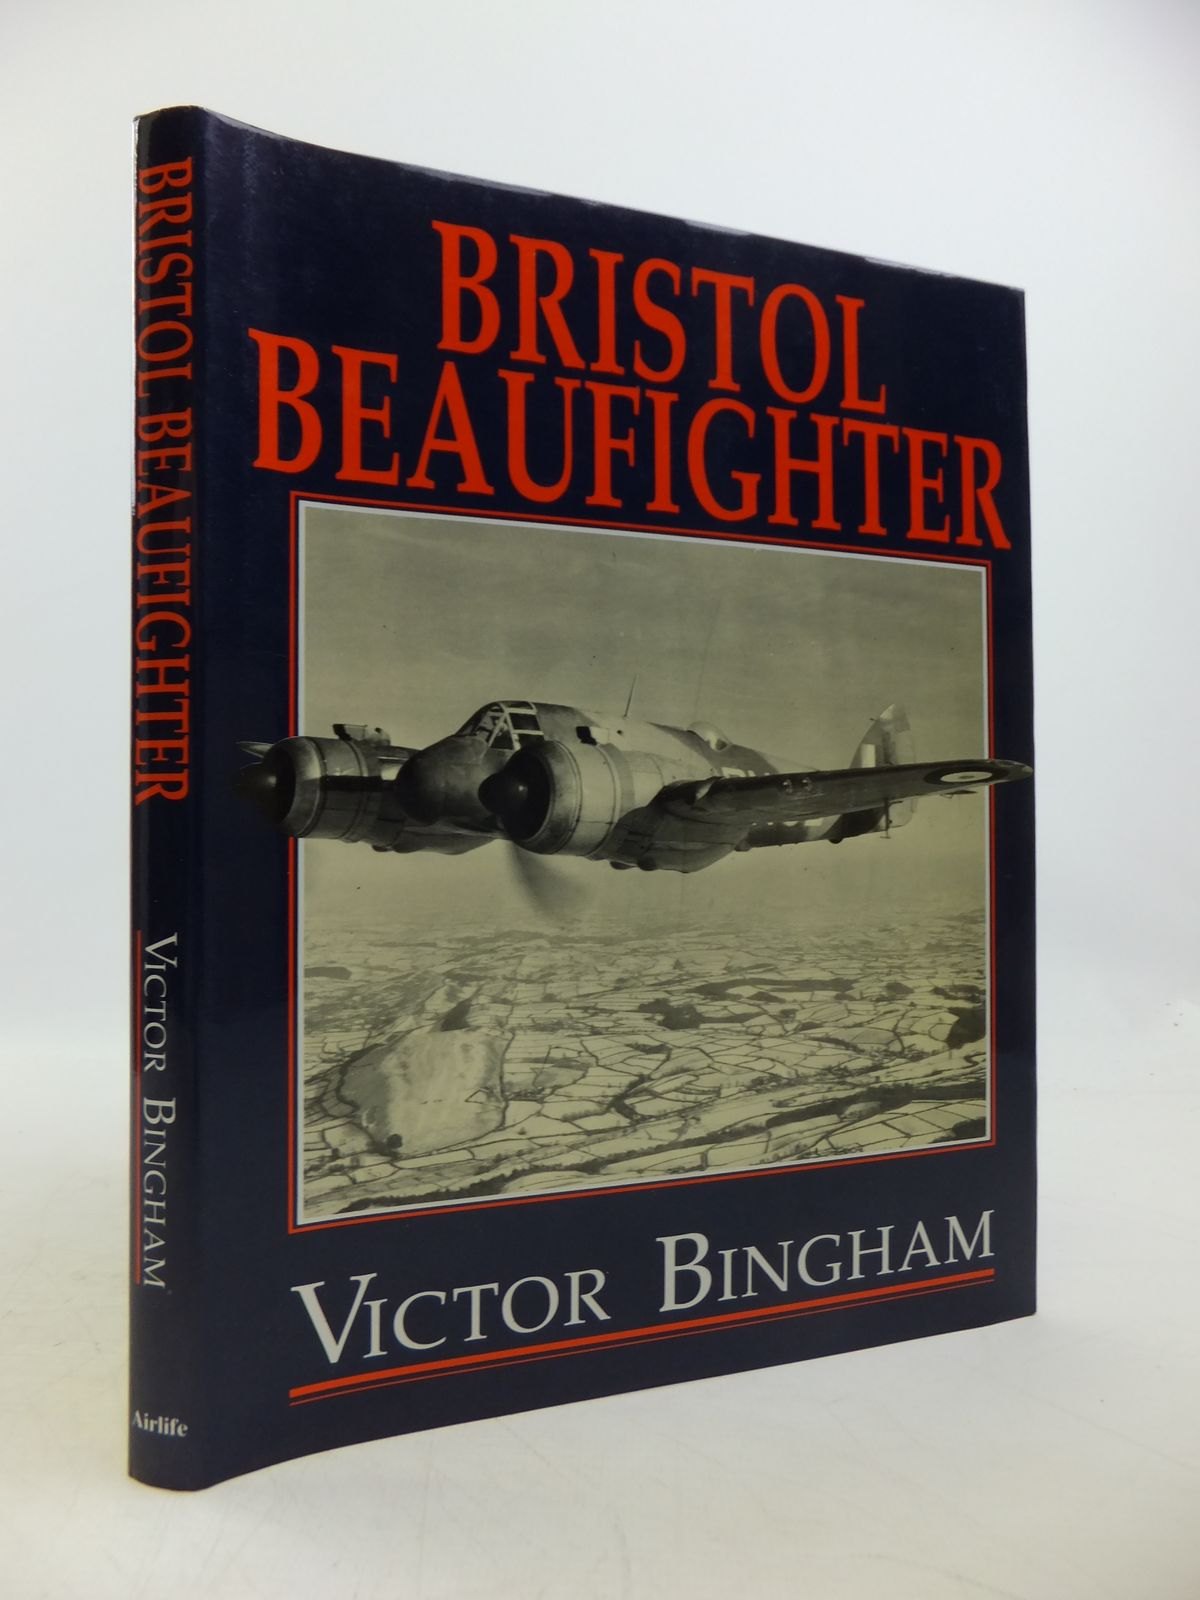 Photo of BRISTOL BEAUFIGHTER written by Bingham, Victor published by Airlife (STOCK CODE: 1811802)  for sale by Stella & Rose's Books